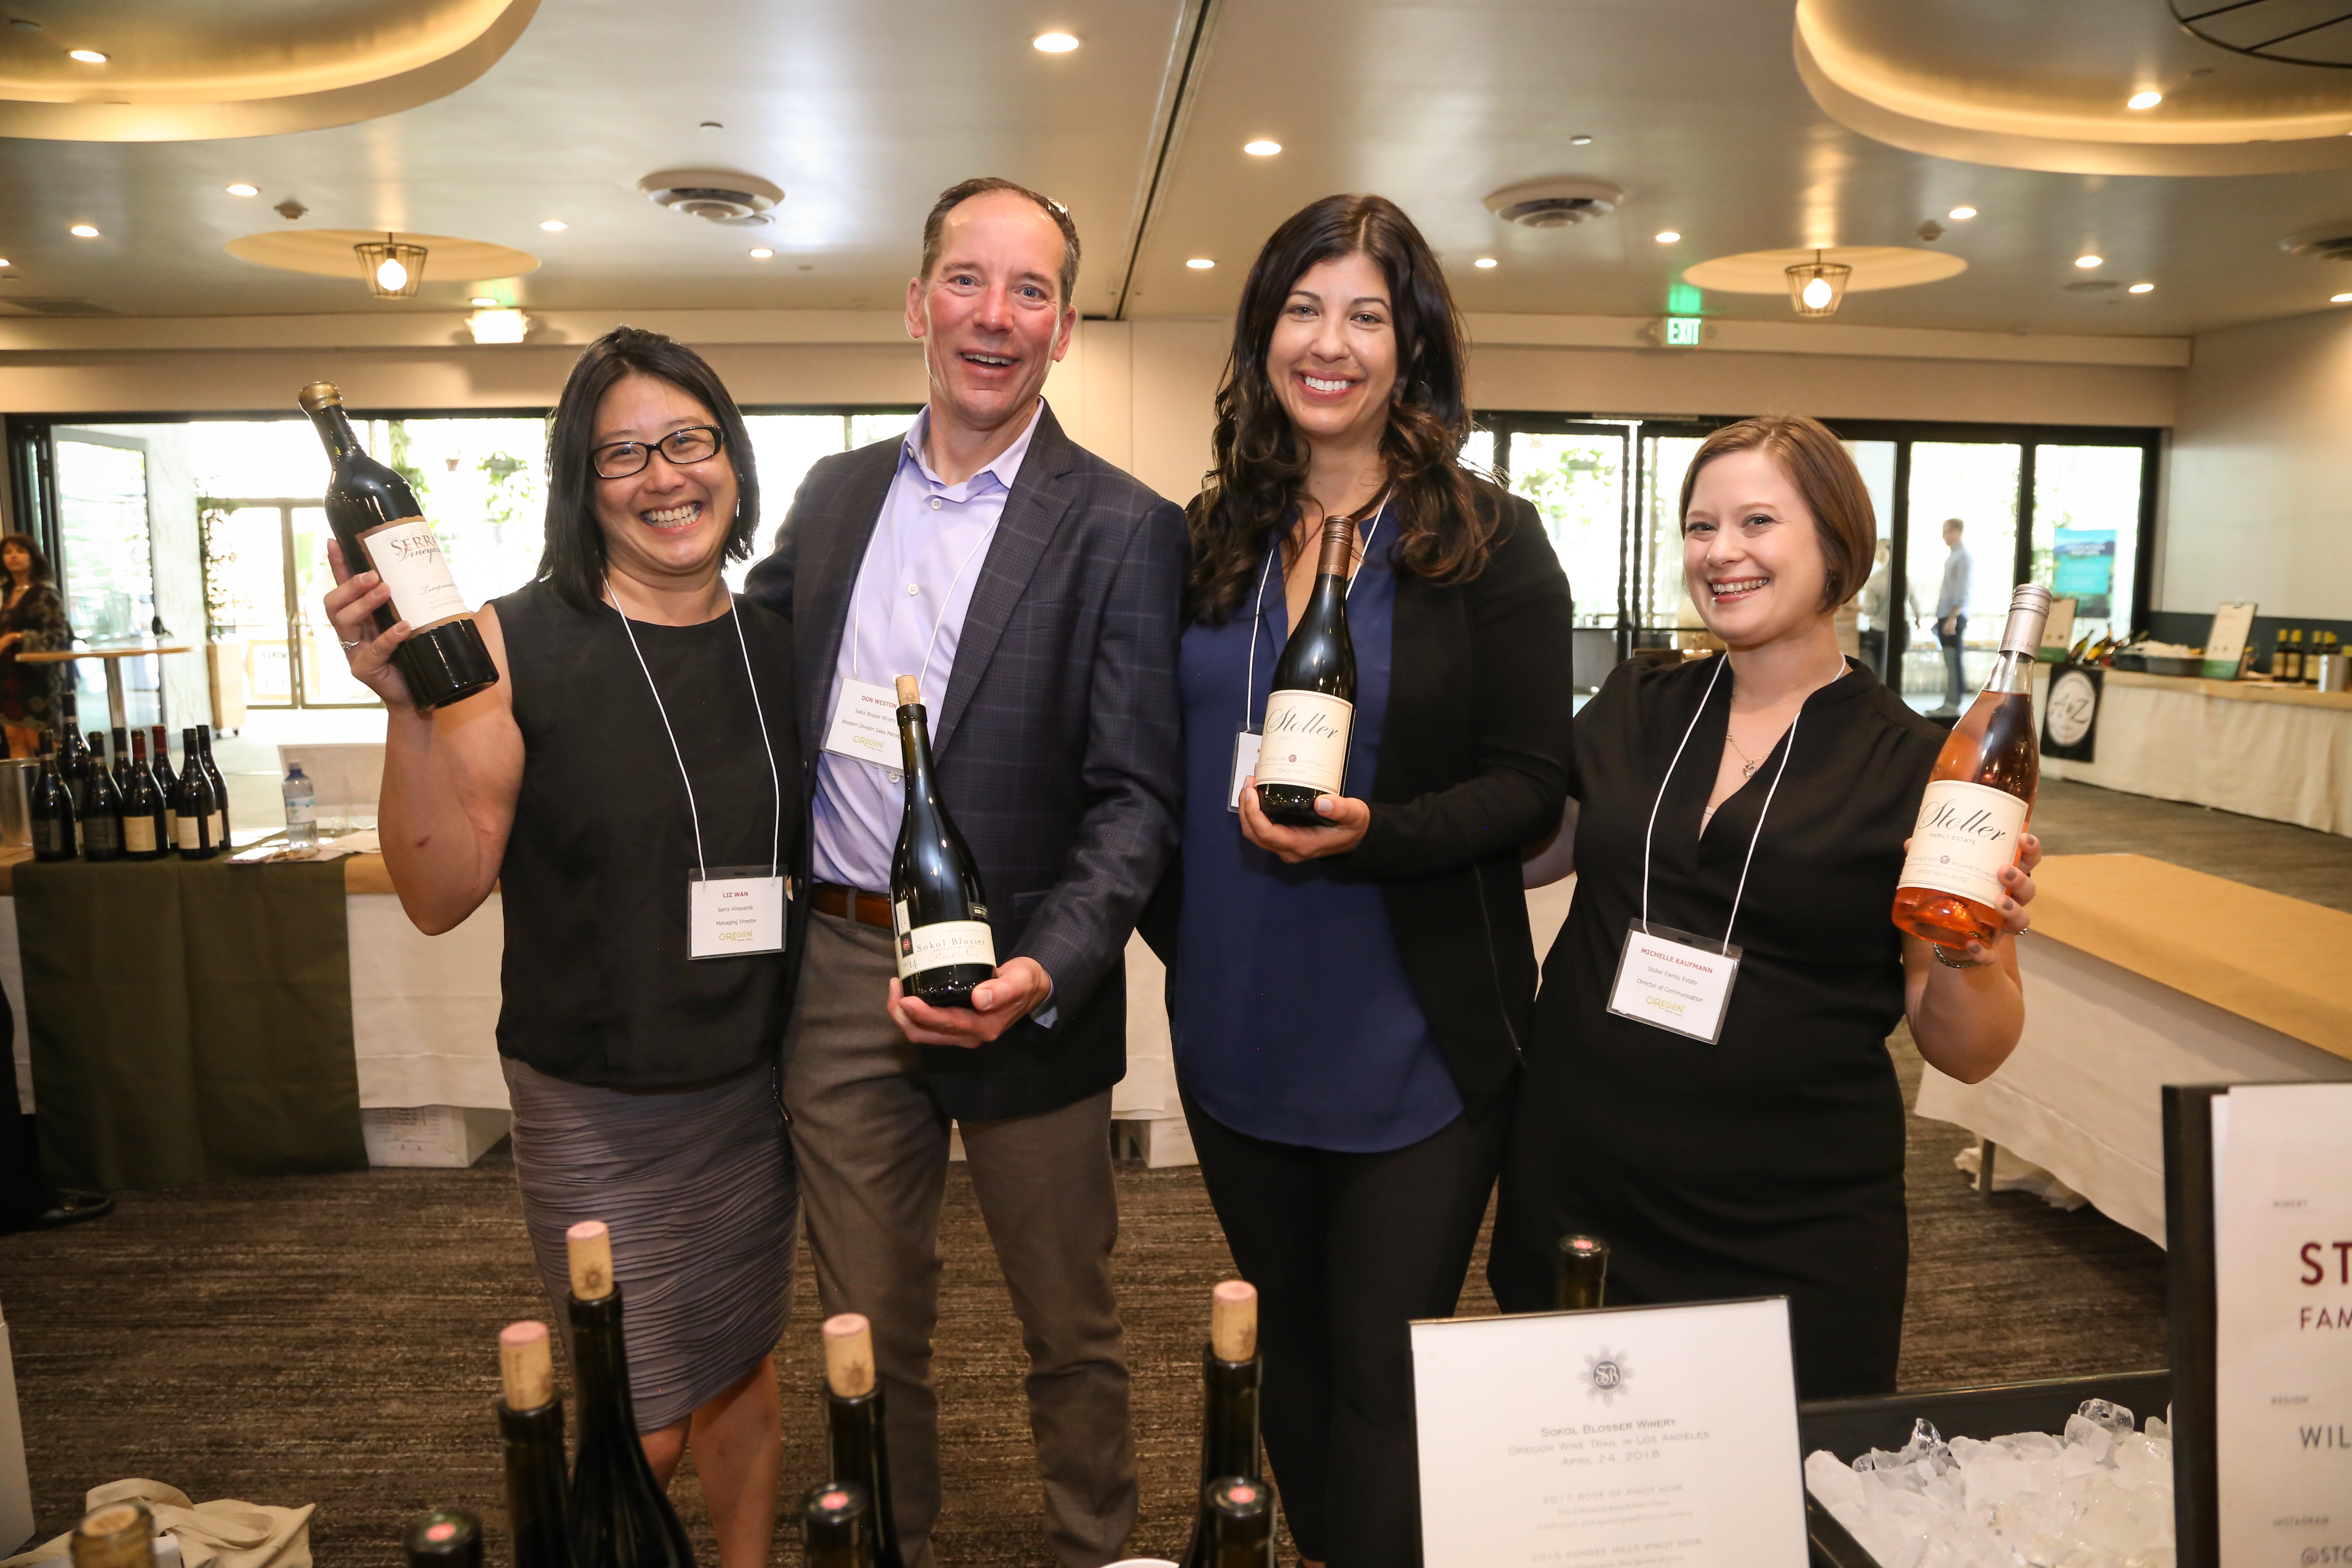 Group of 4 Oregon wine producers holding bottles at event